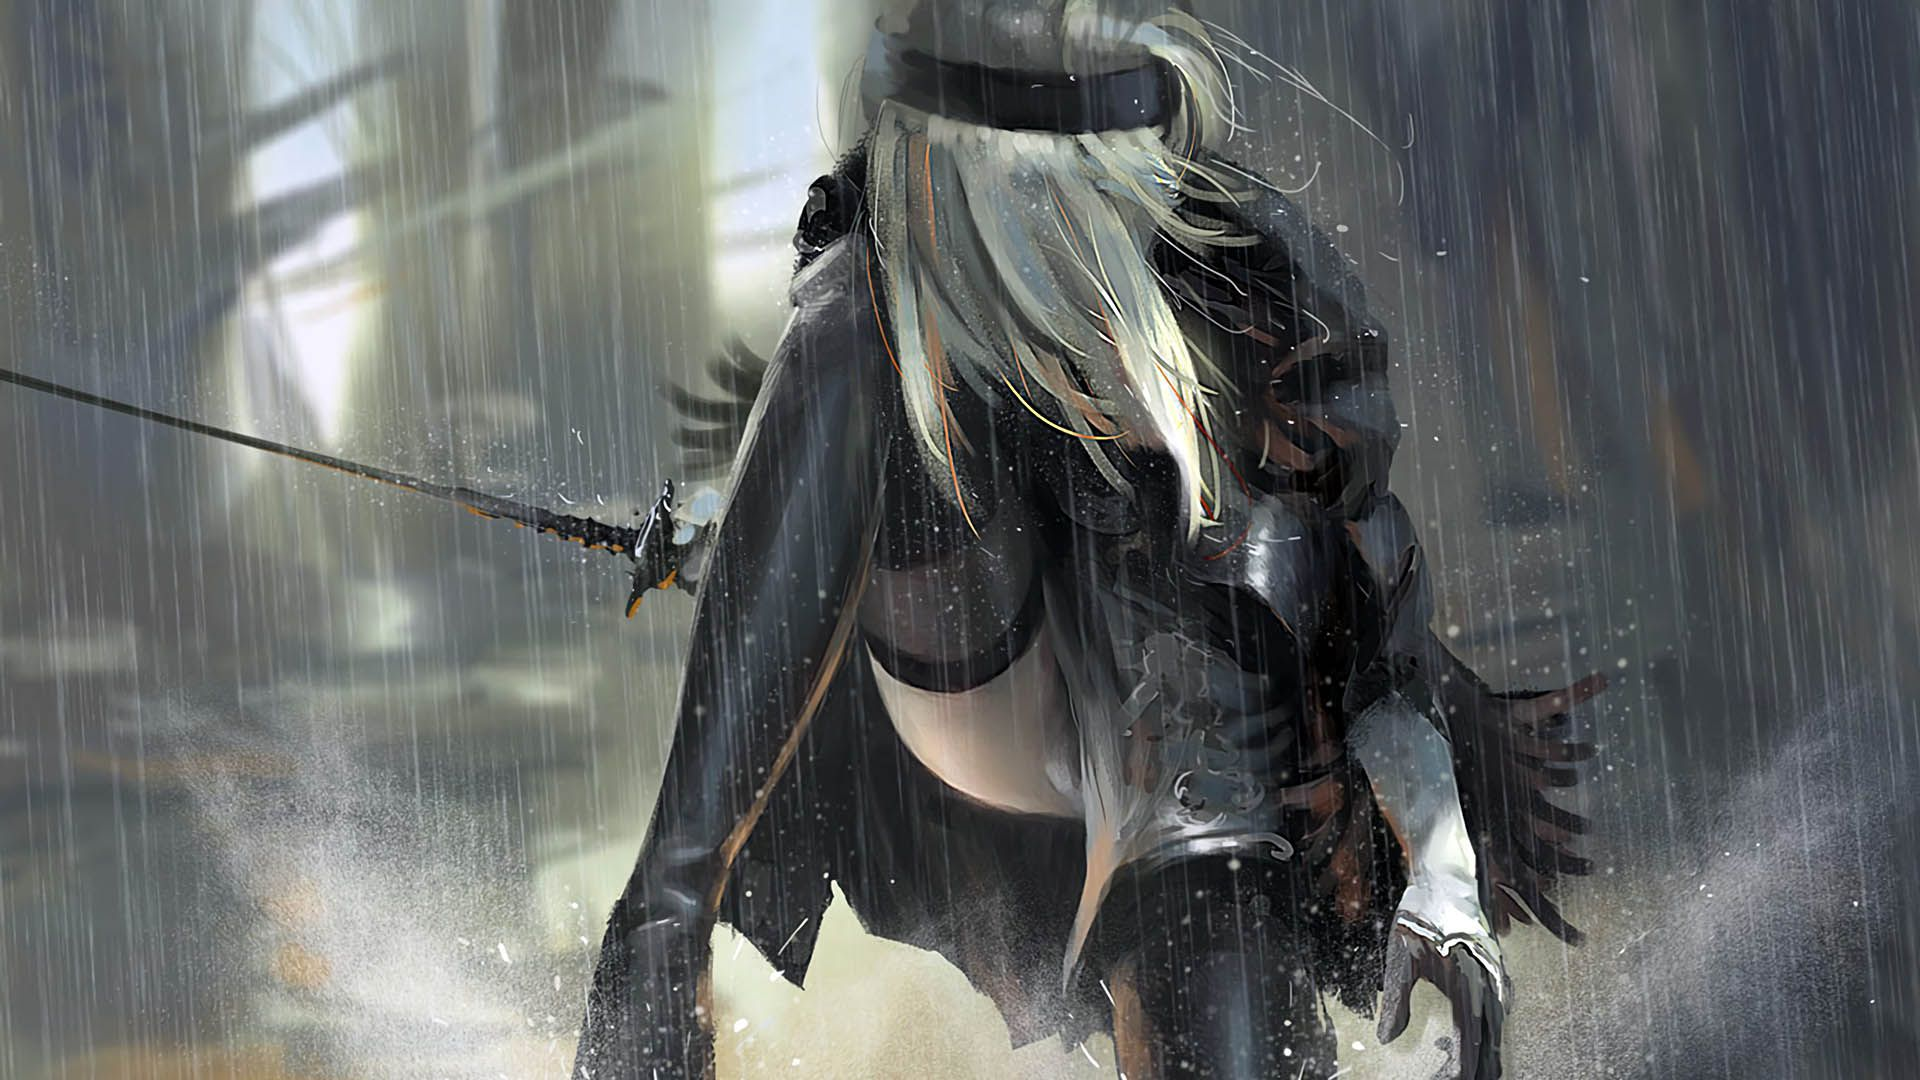 Nier Automata Fan Art Wallpaper 01 1920x1080: 2B Nier Automata 1920x1080 Wallpaper